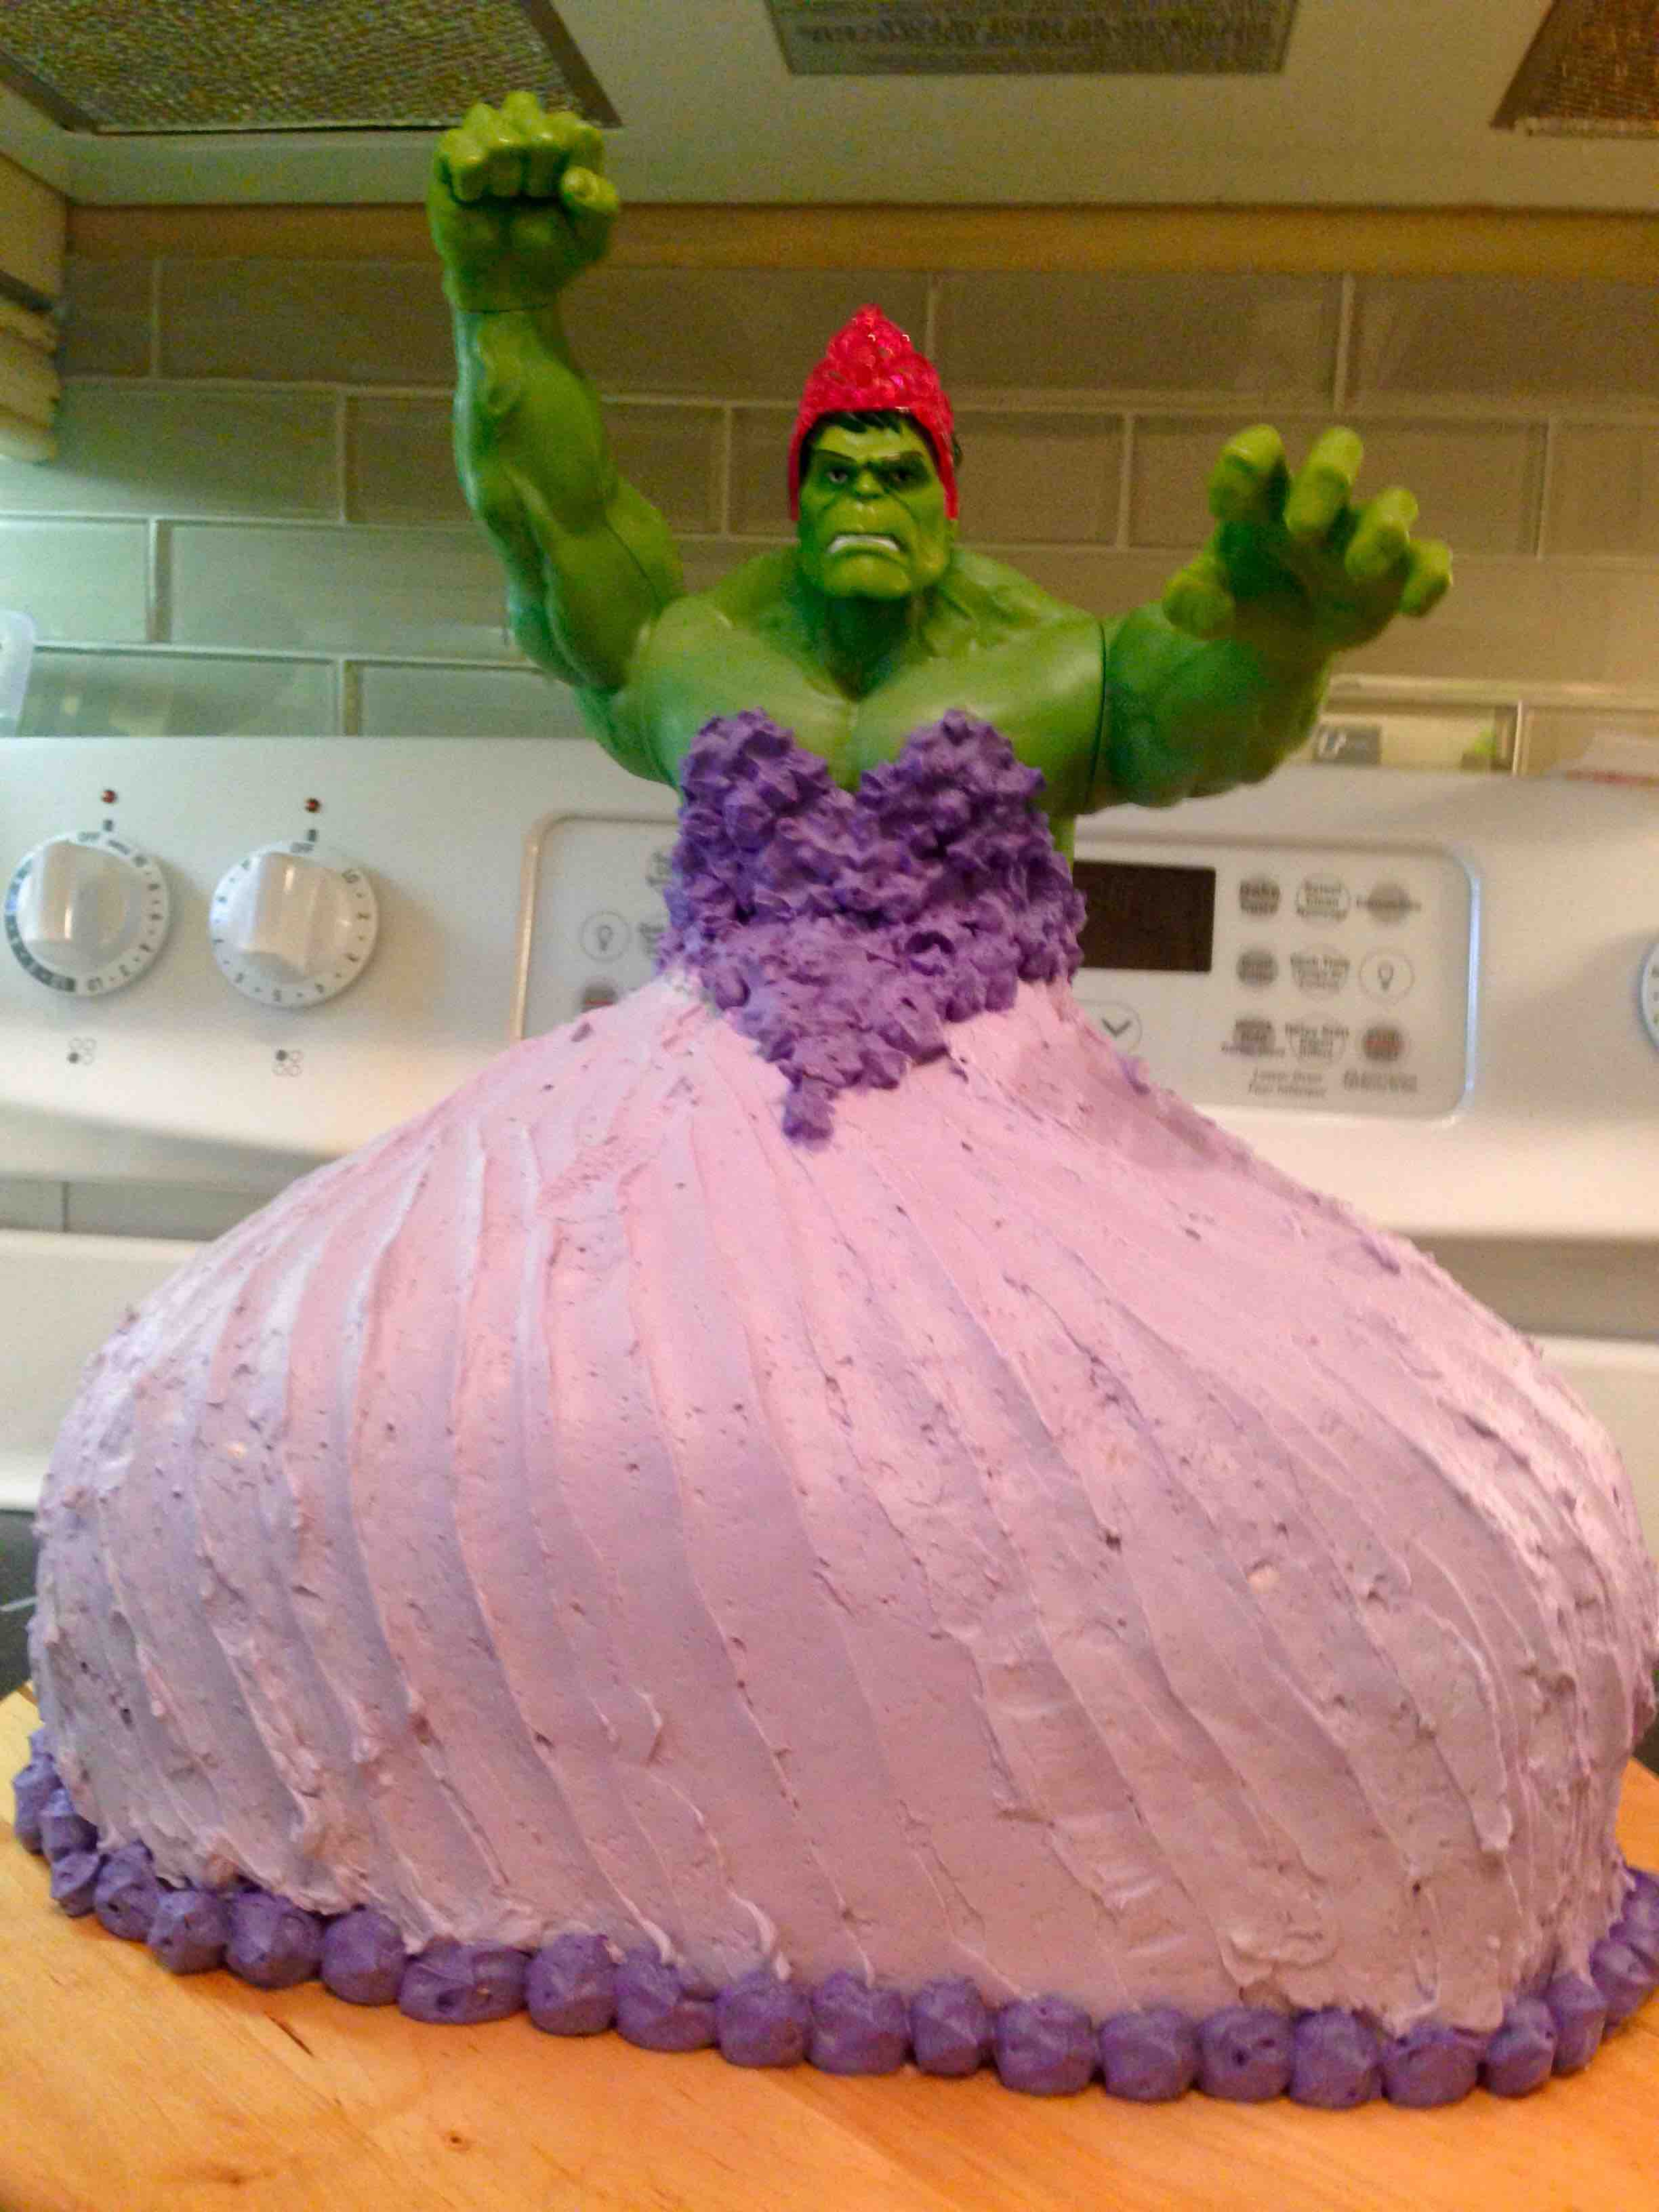 Twin 4 Year Old Girls Ask For A Hulk Princess Birthday Cake Get